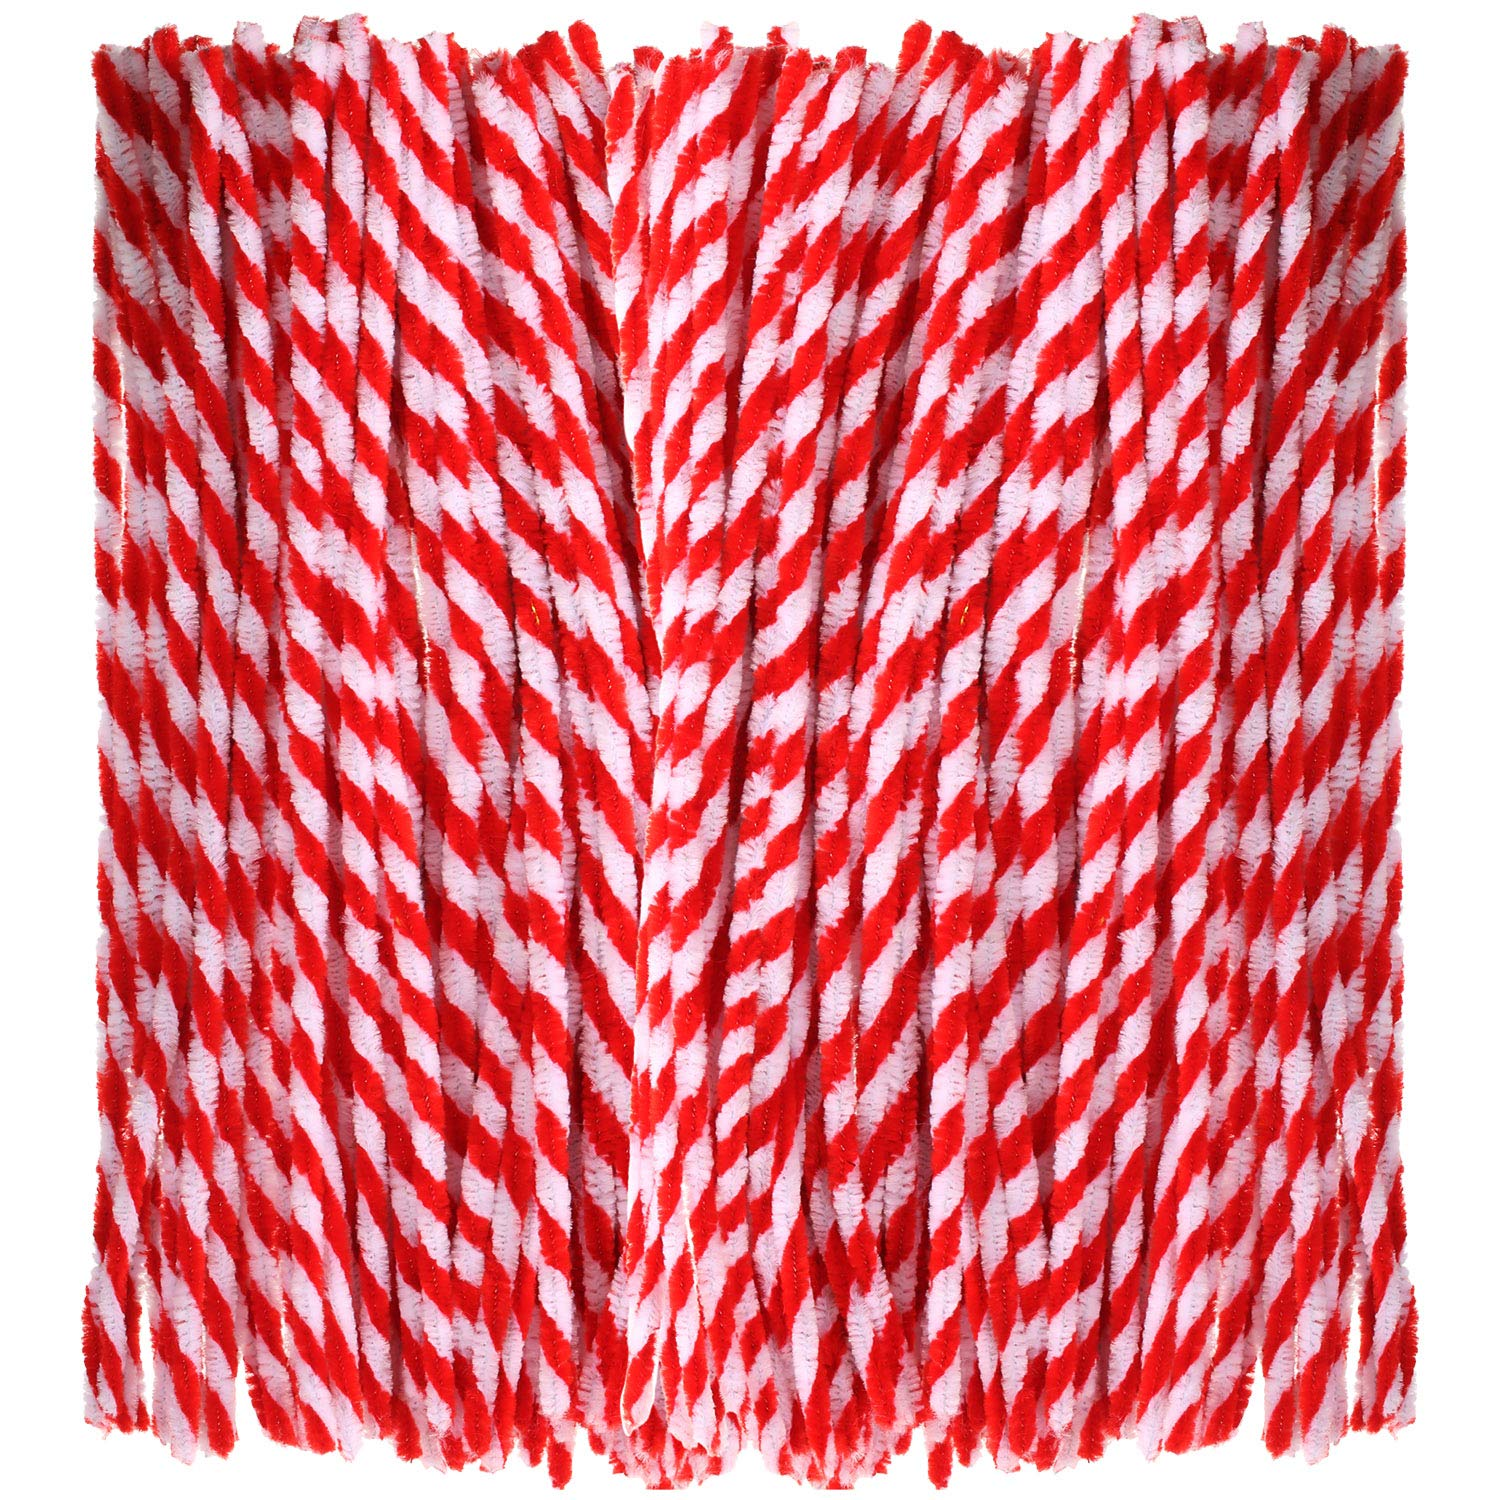 Bememo 200 Pieces Christmas Striped Chenille Stem Art Craft Pipe Cleaners, Red with White, 6 mm by 300 mm